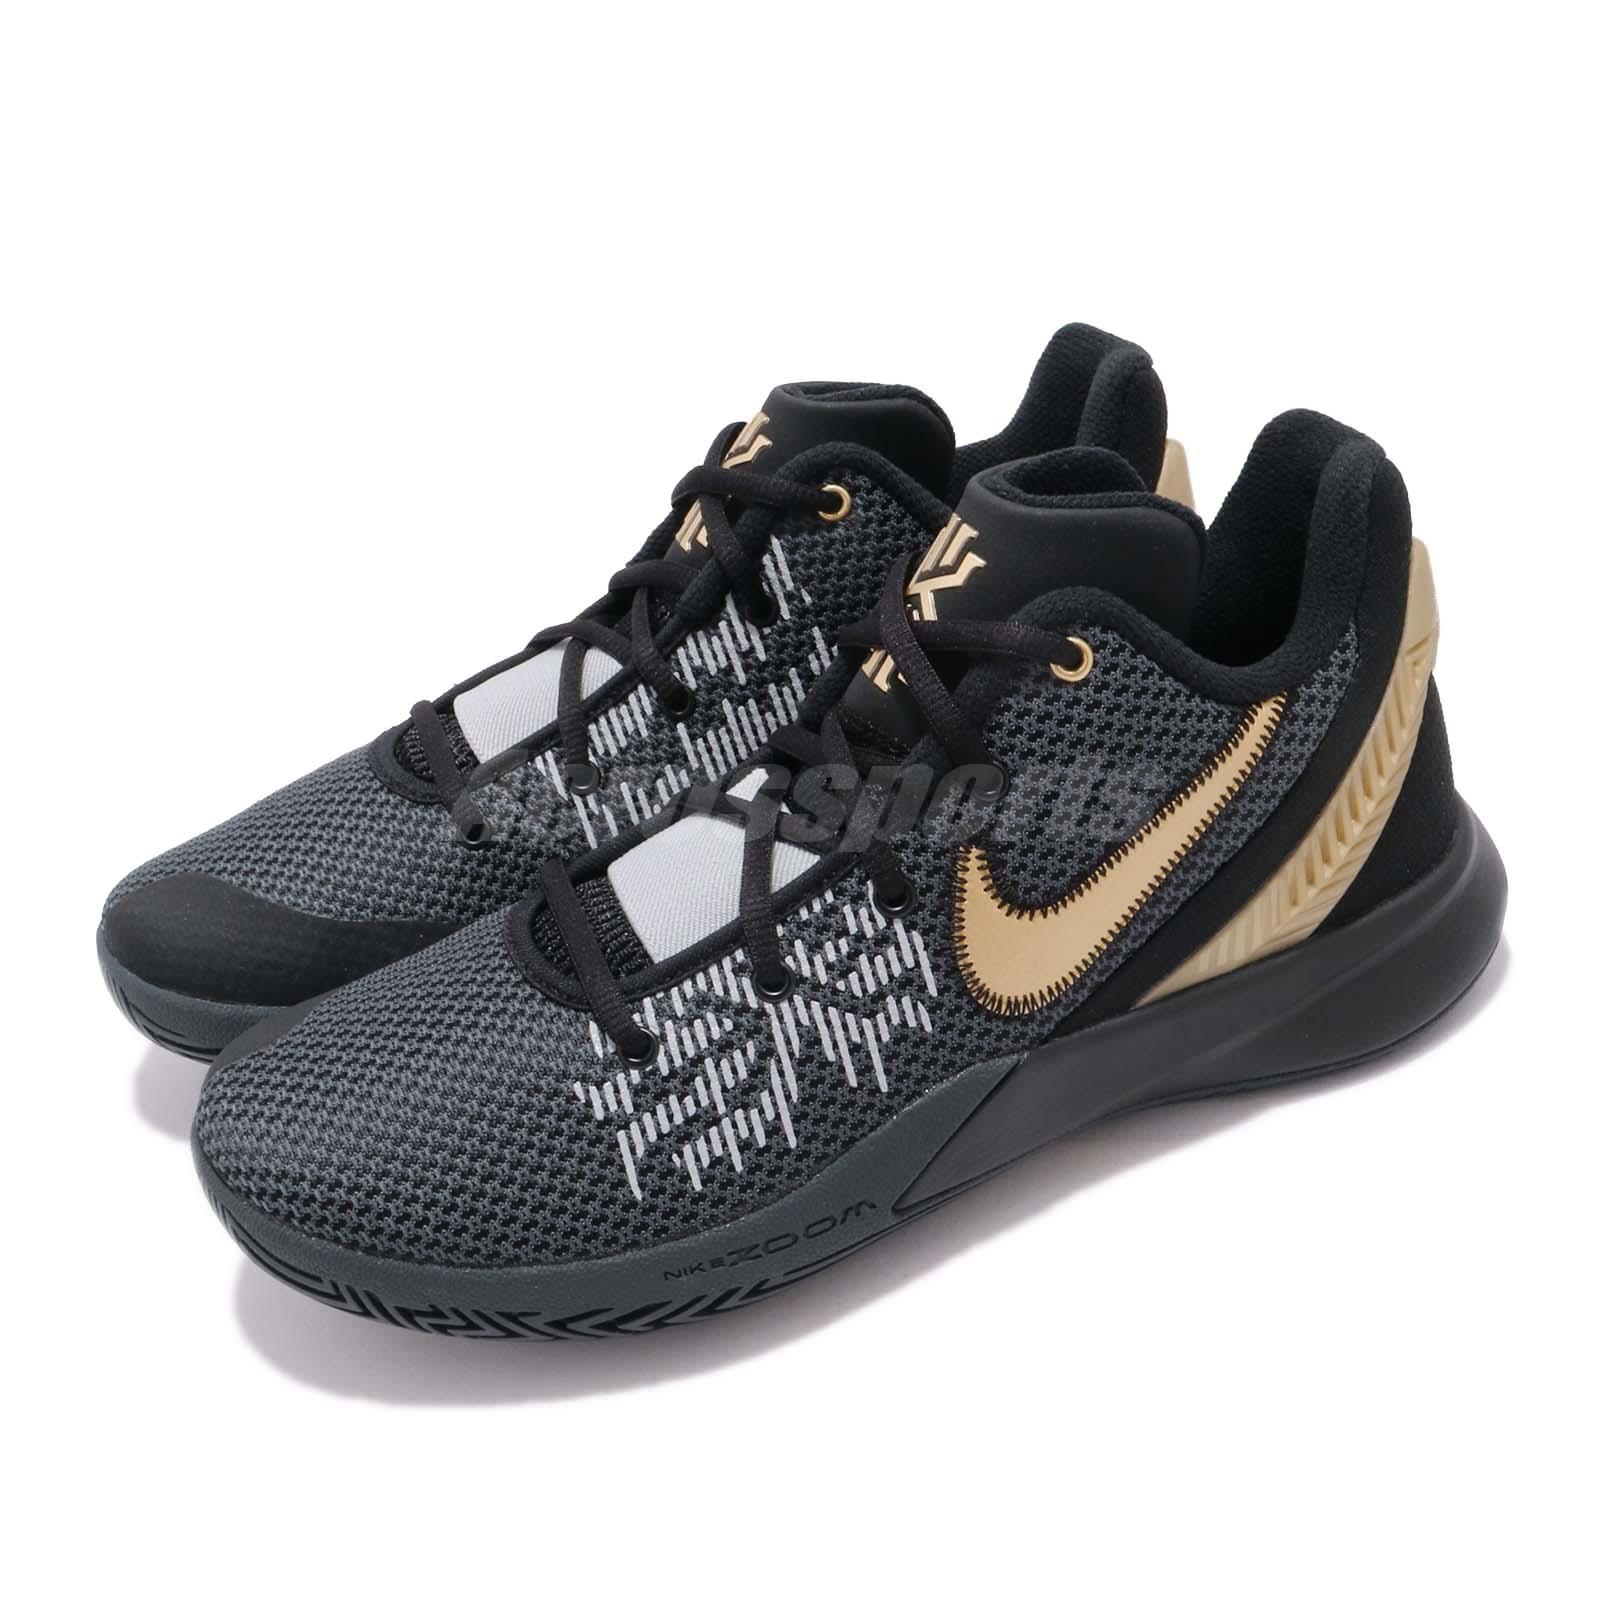 9fc298215e09 Details about Nike Kyrie Flytrap II EP Irving Black Gold Grey Men  Basketball Shoes AO4438-002